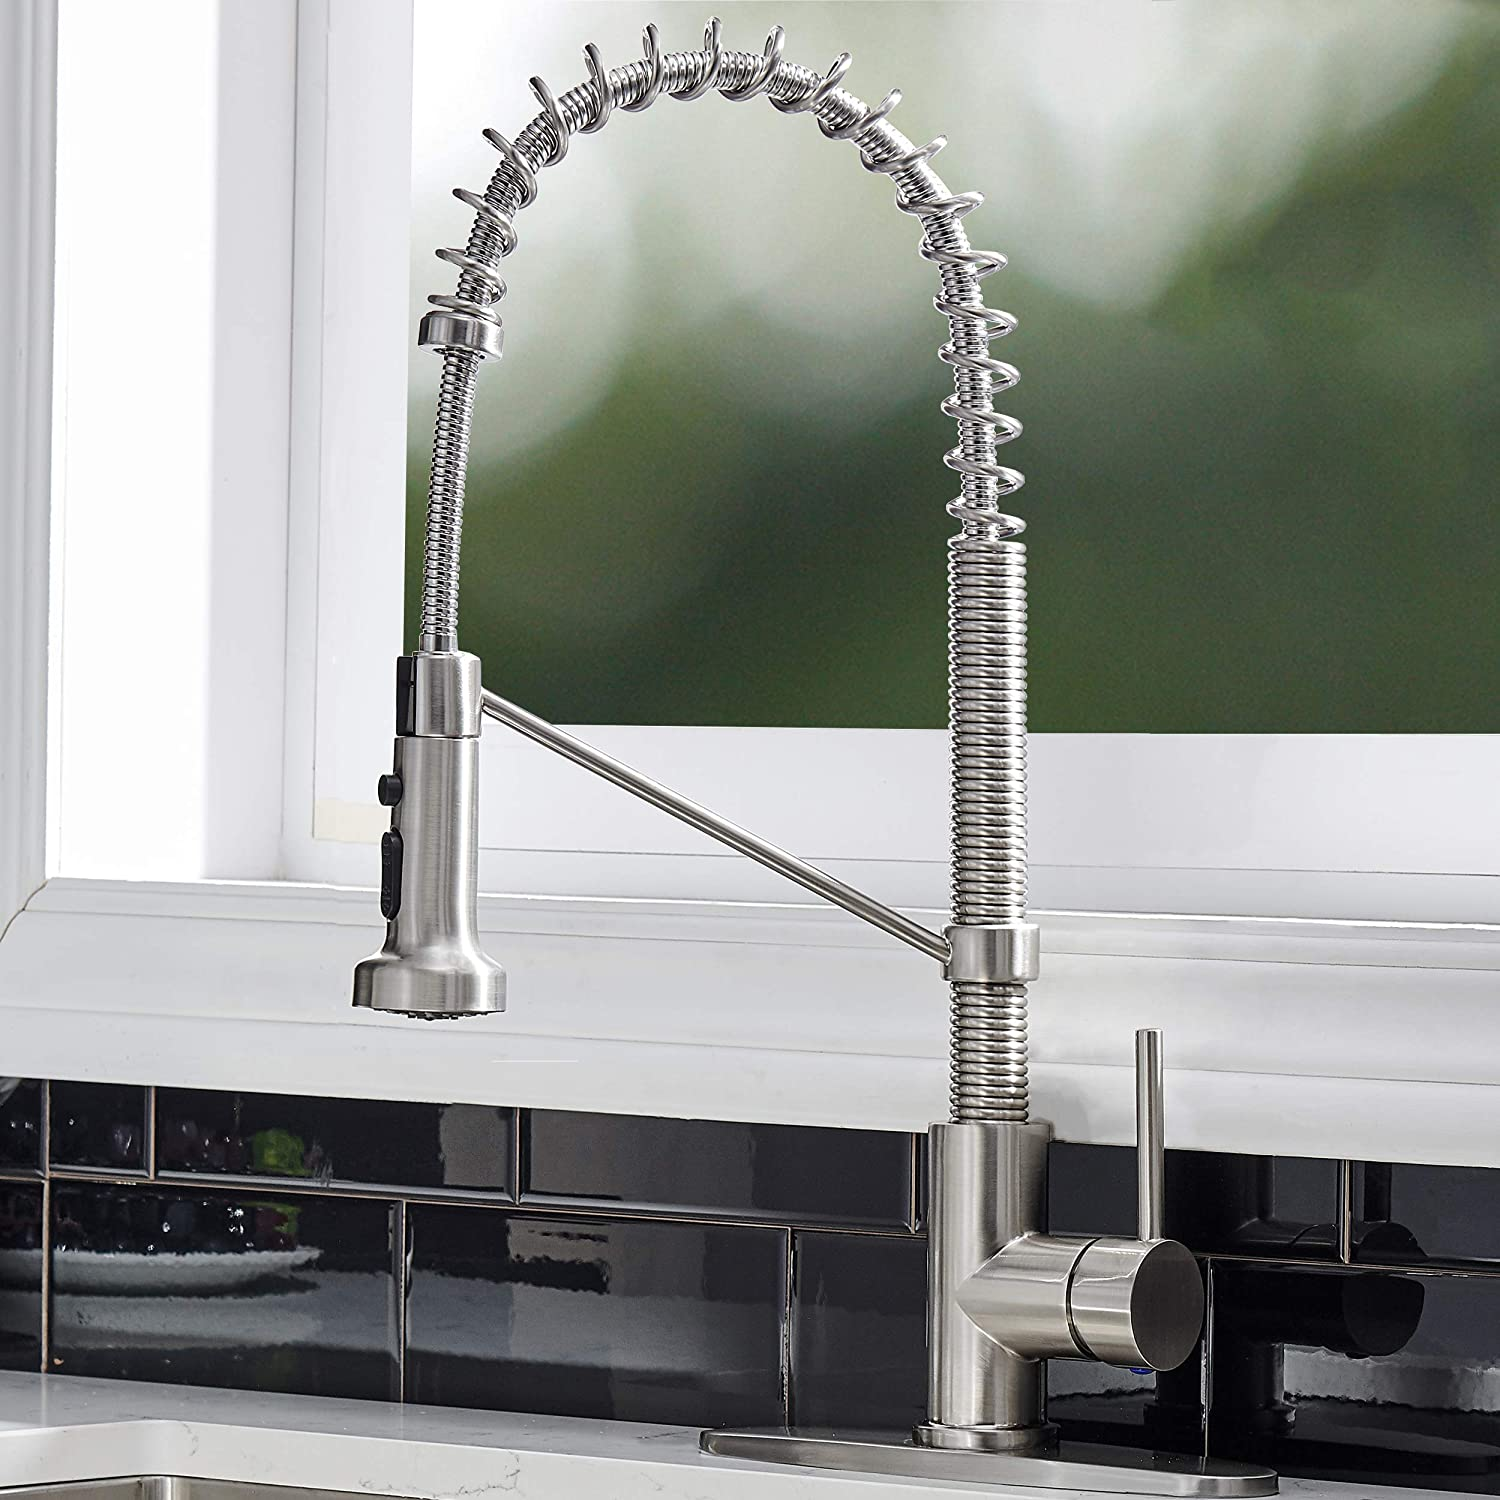 Ufaucet Modern Commercial Lead Free Stainless Steel Single Handle Pull Down Sprayer Spring Kitchen Faucet, Brushed Nickel Kitchen Sink Faucets with Deck Plate